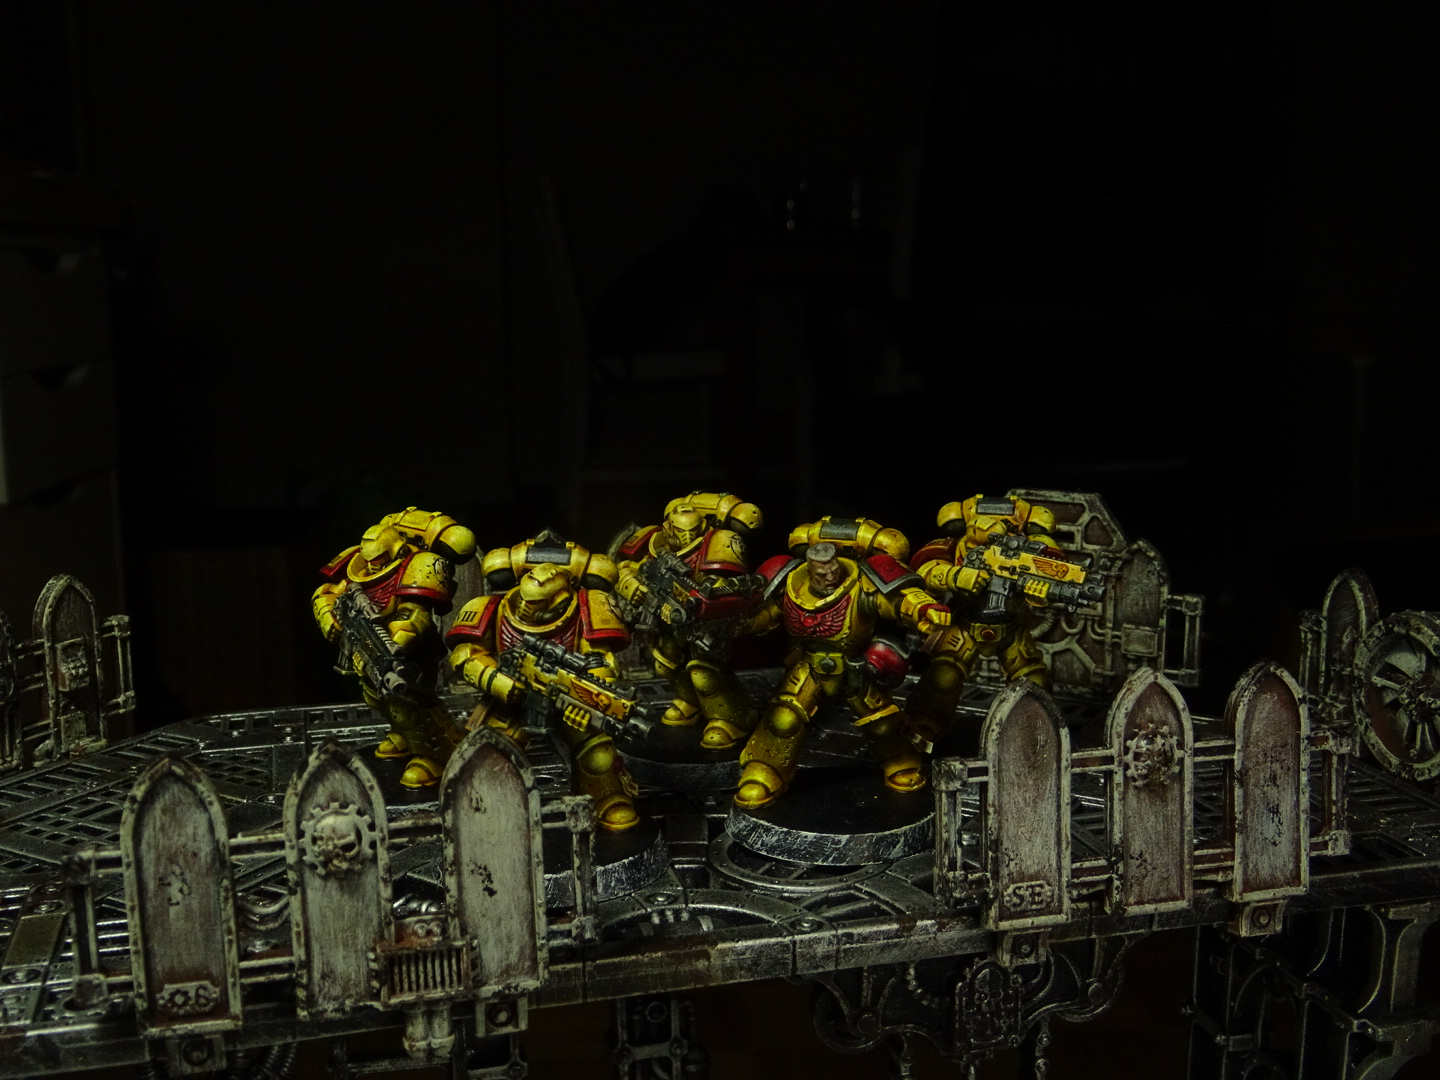 Imperial Fists intercessors